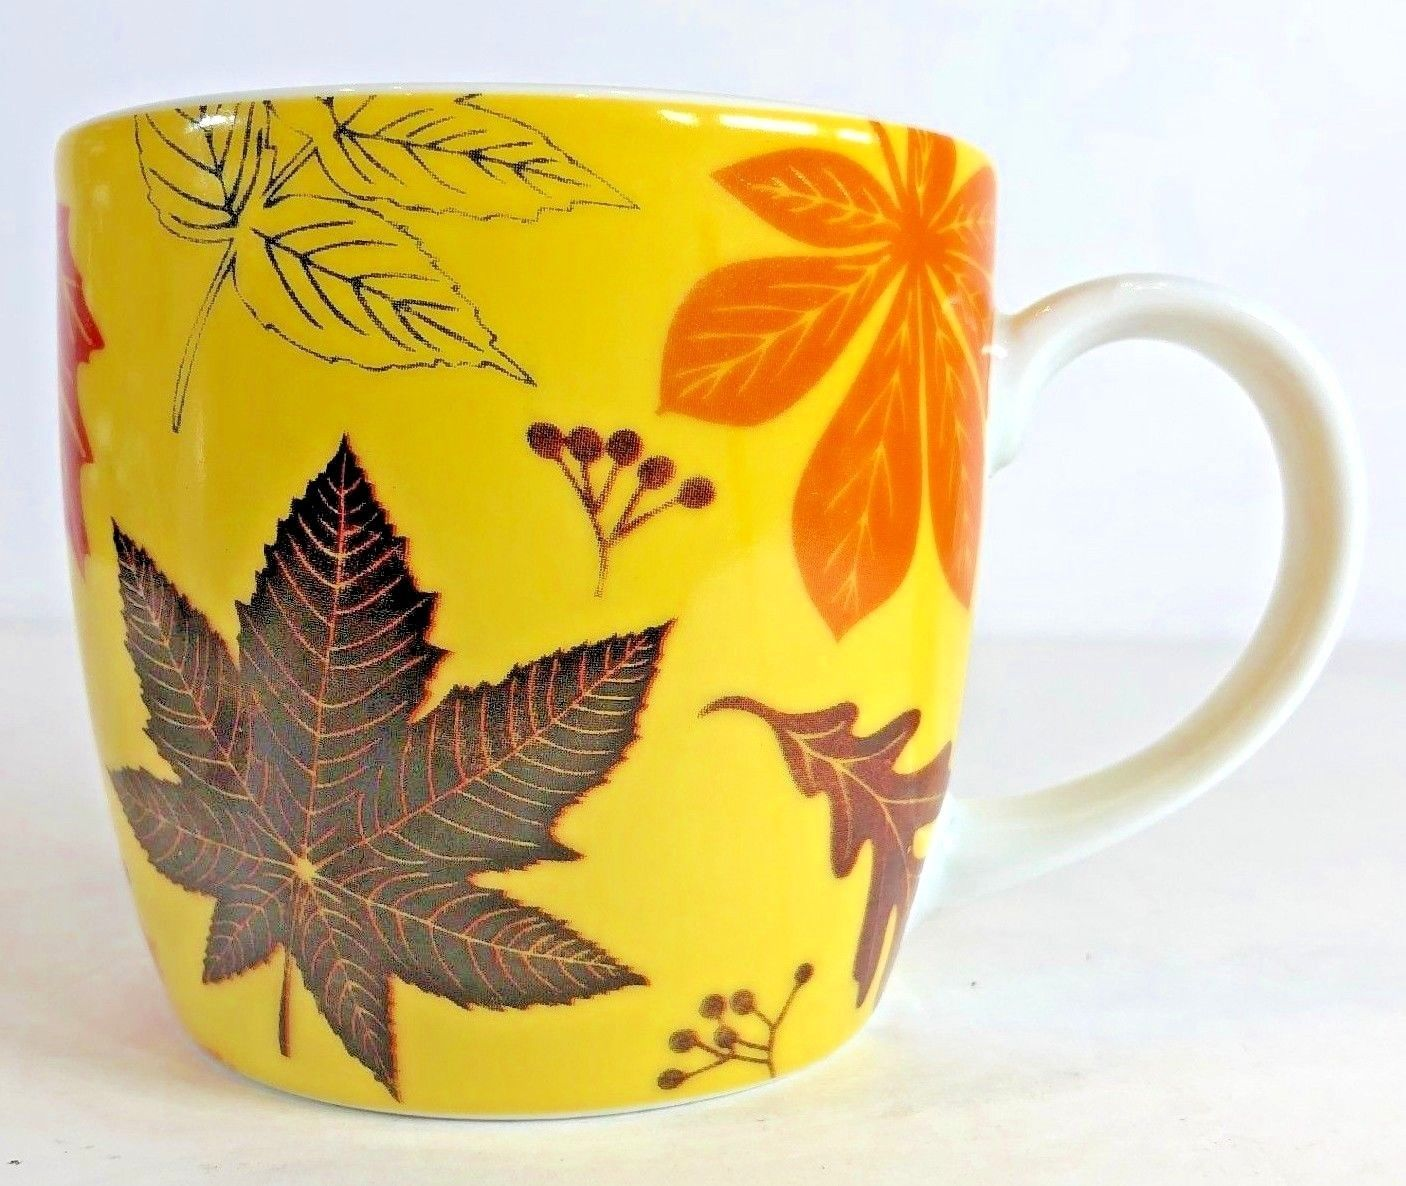 Primary image for Now Designs (Bright Autumn Leave) Yellow Coffee Ceramic Mug 12 oz